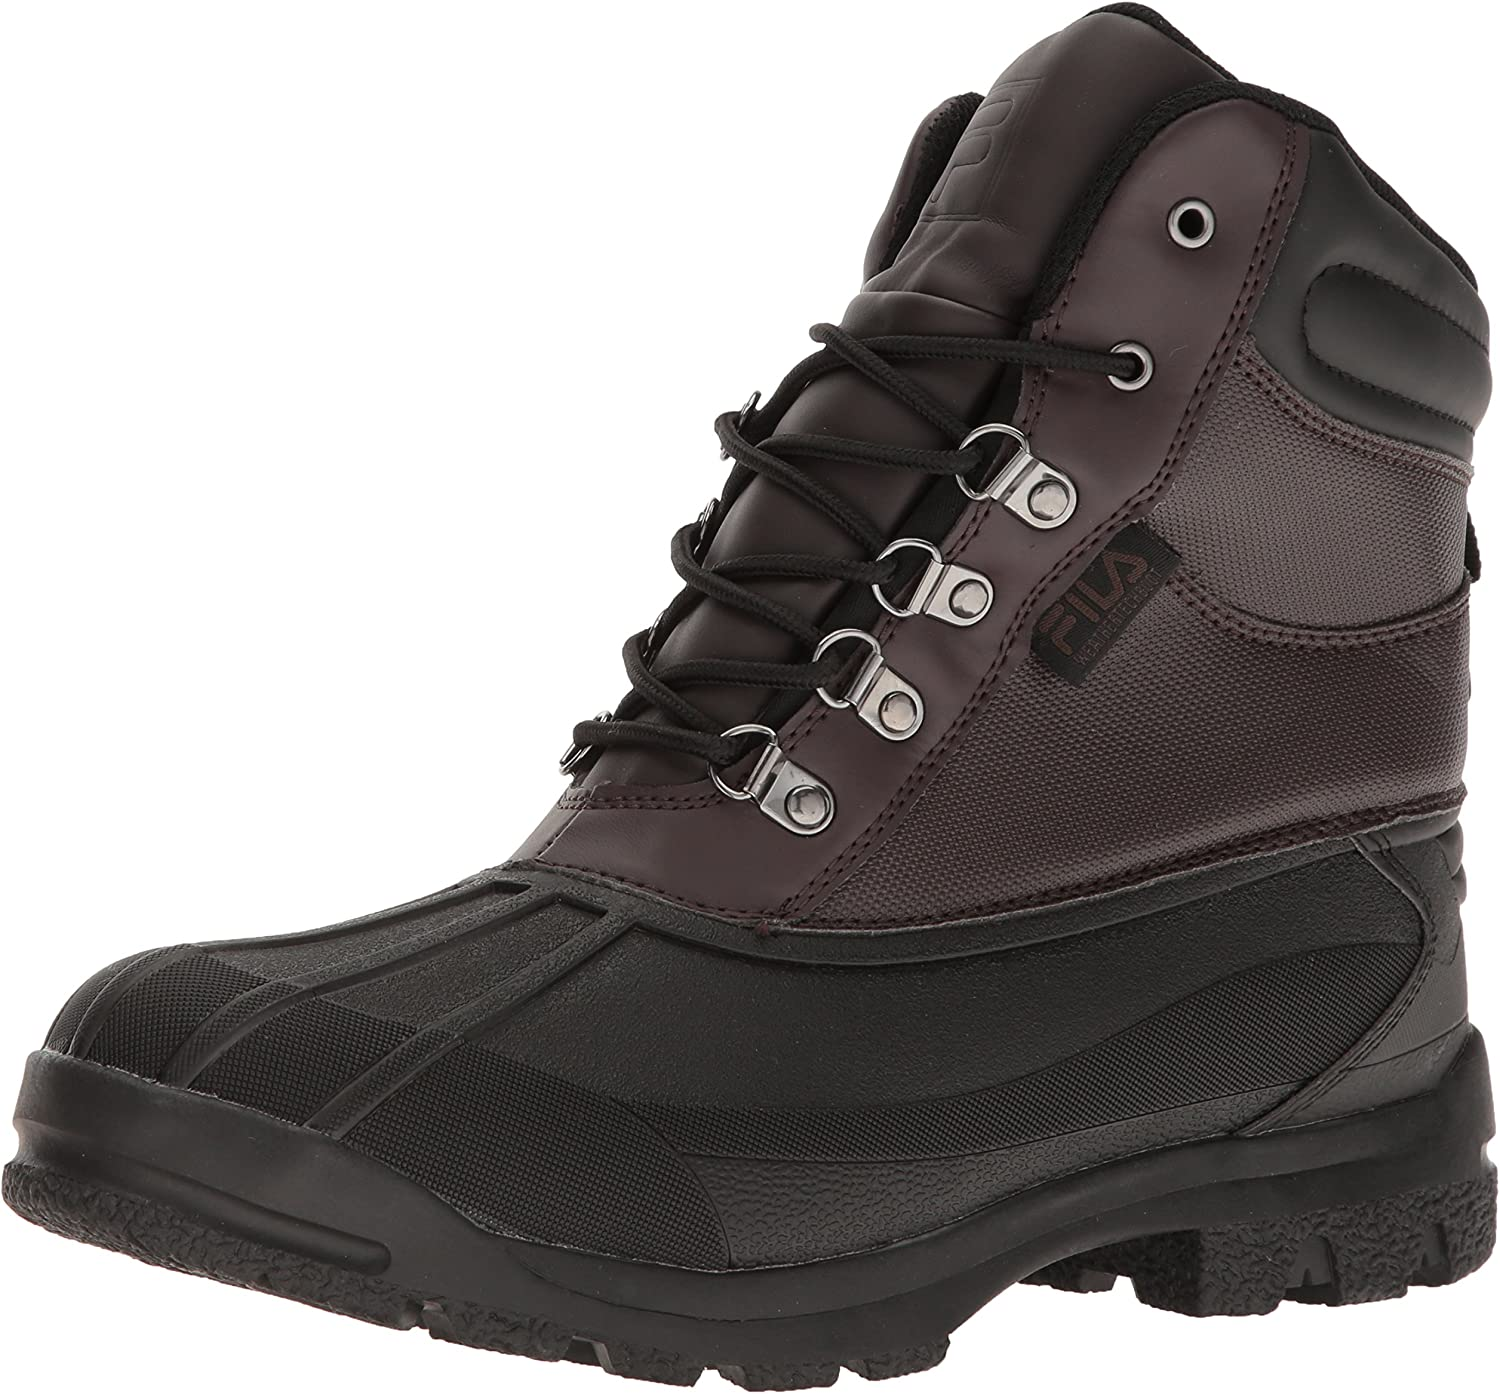 Fila Kids Weathertech Extreme Hiking Boots Leather